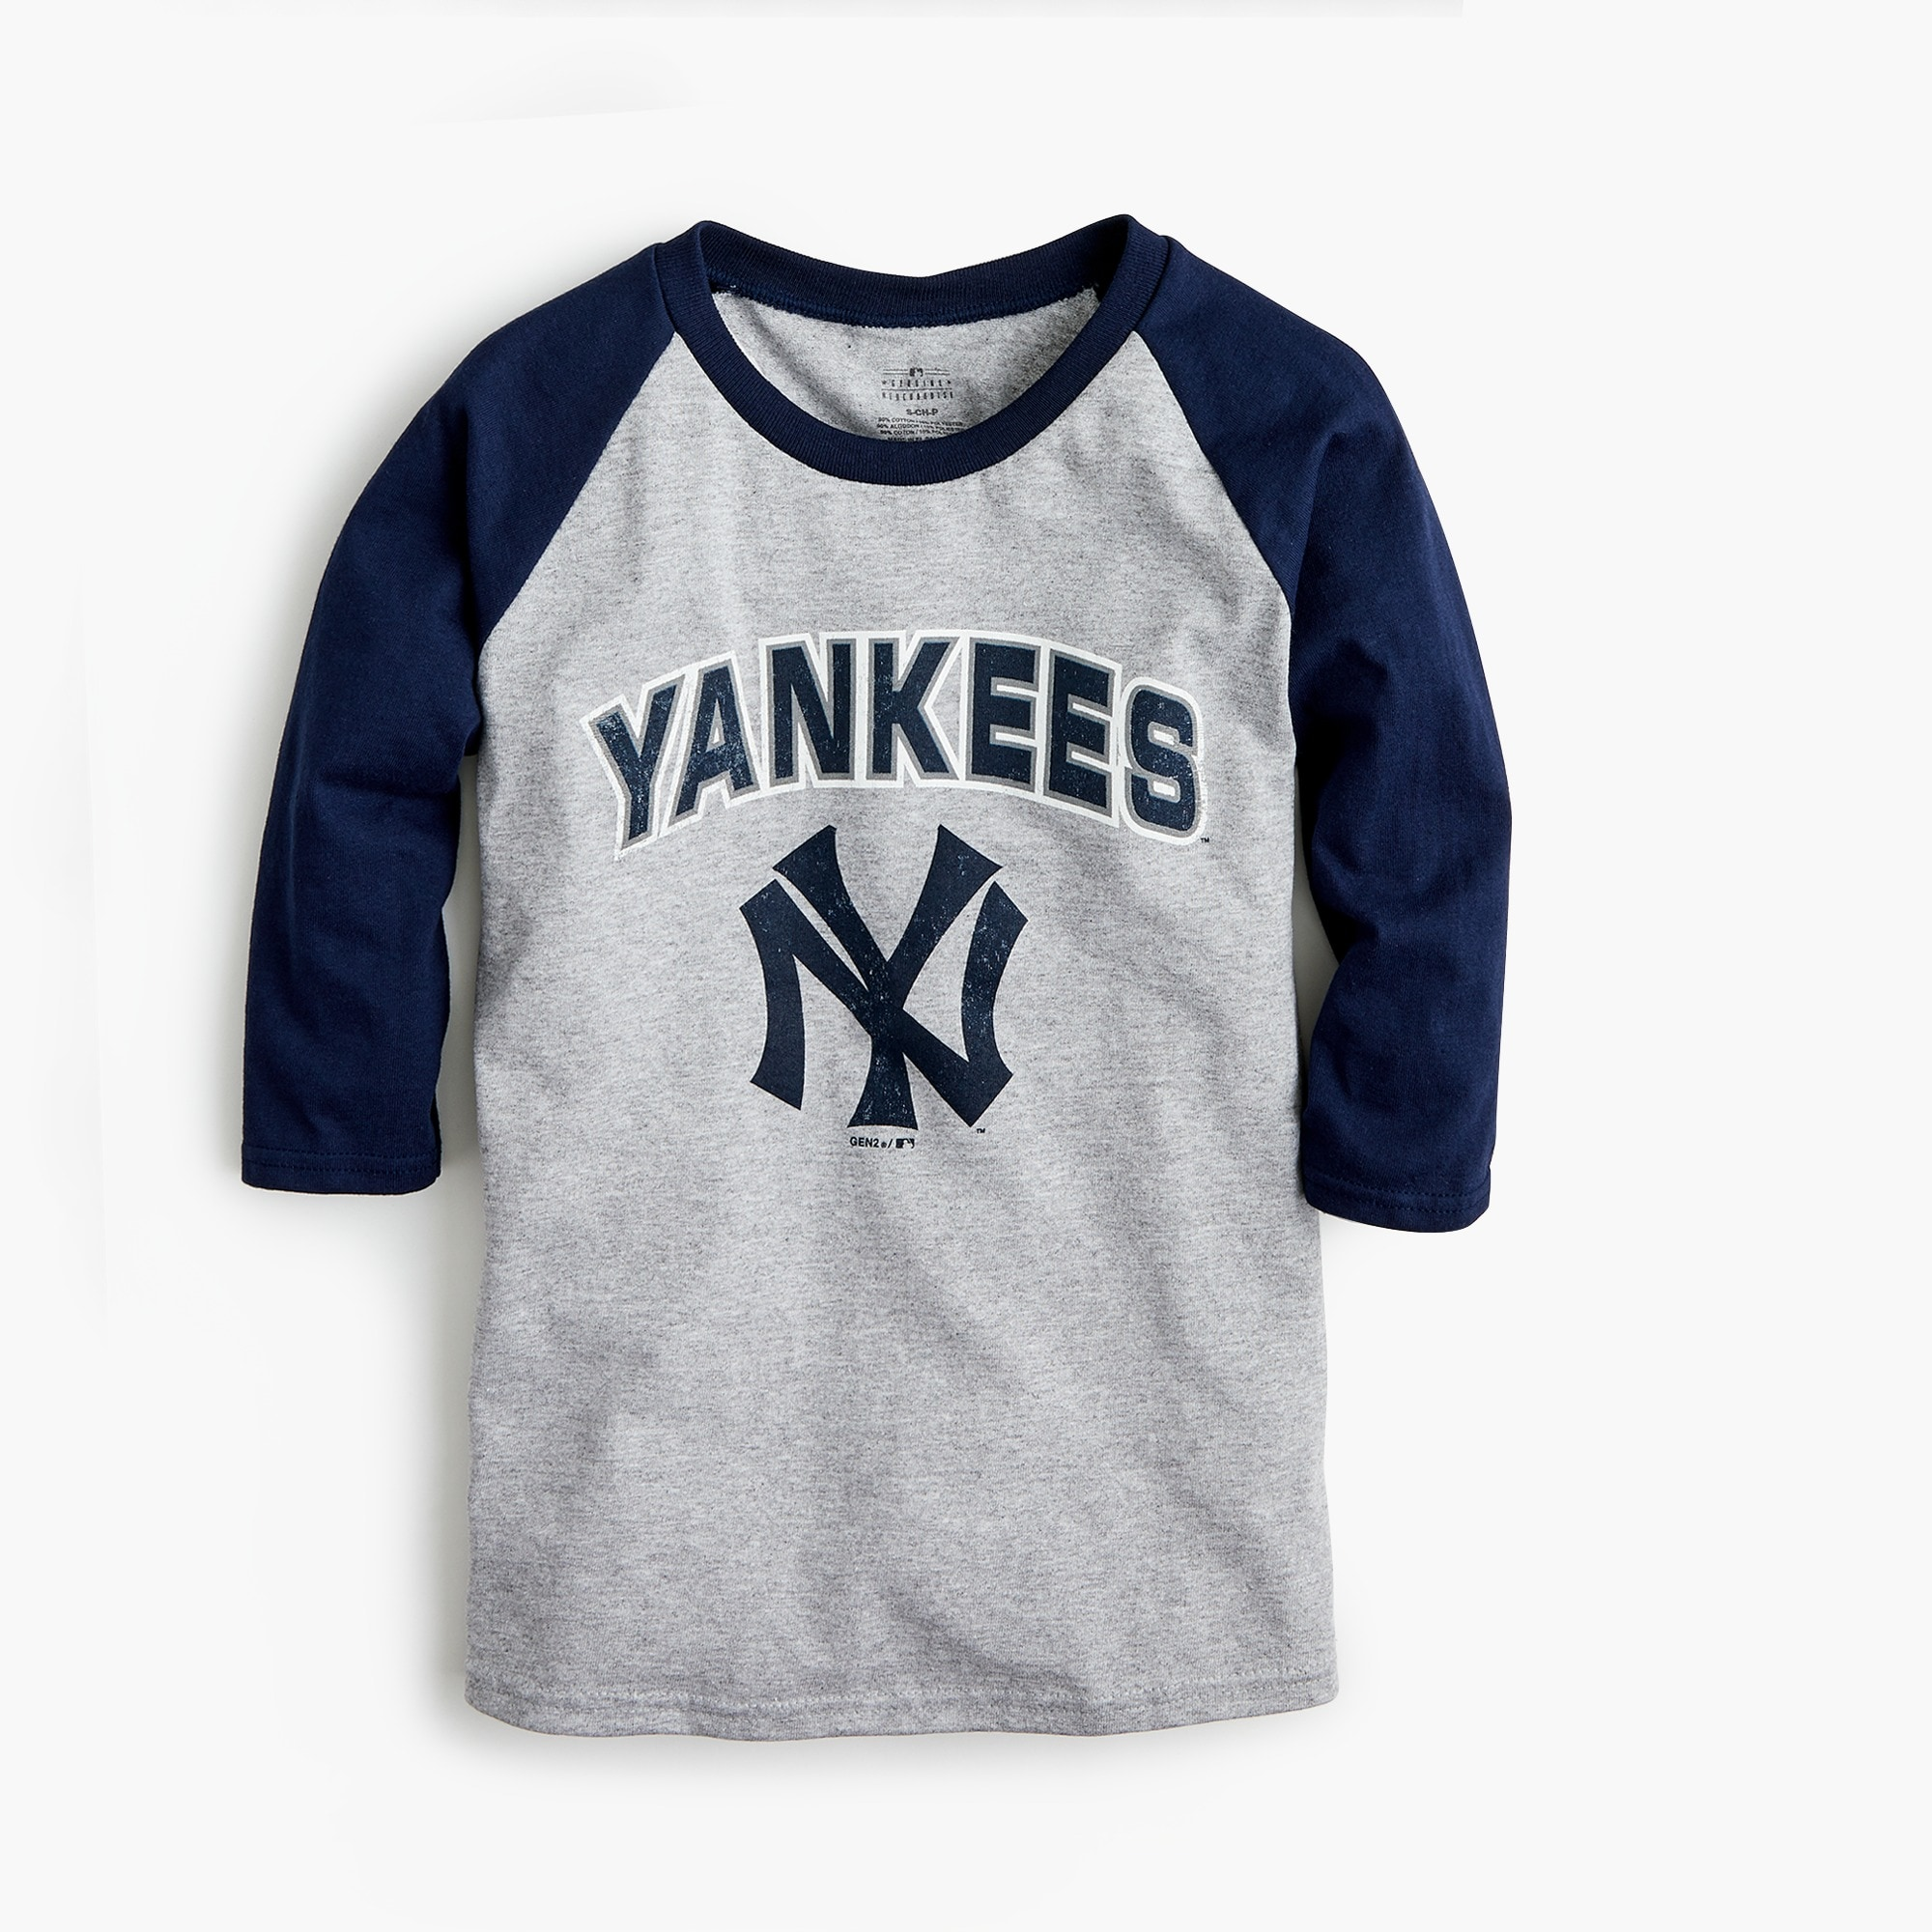 Kids' New York Yankees baseball T-shirt boy new arrivals c